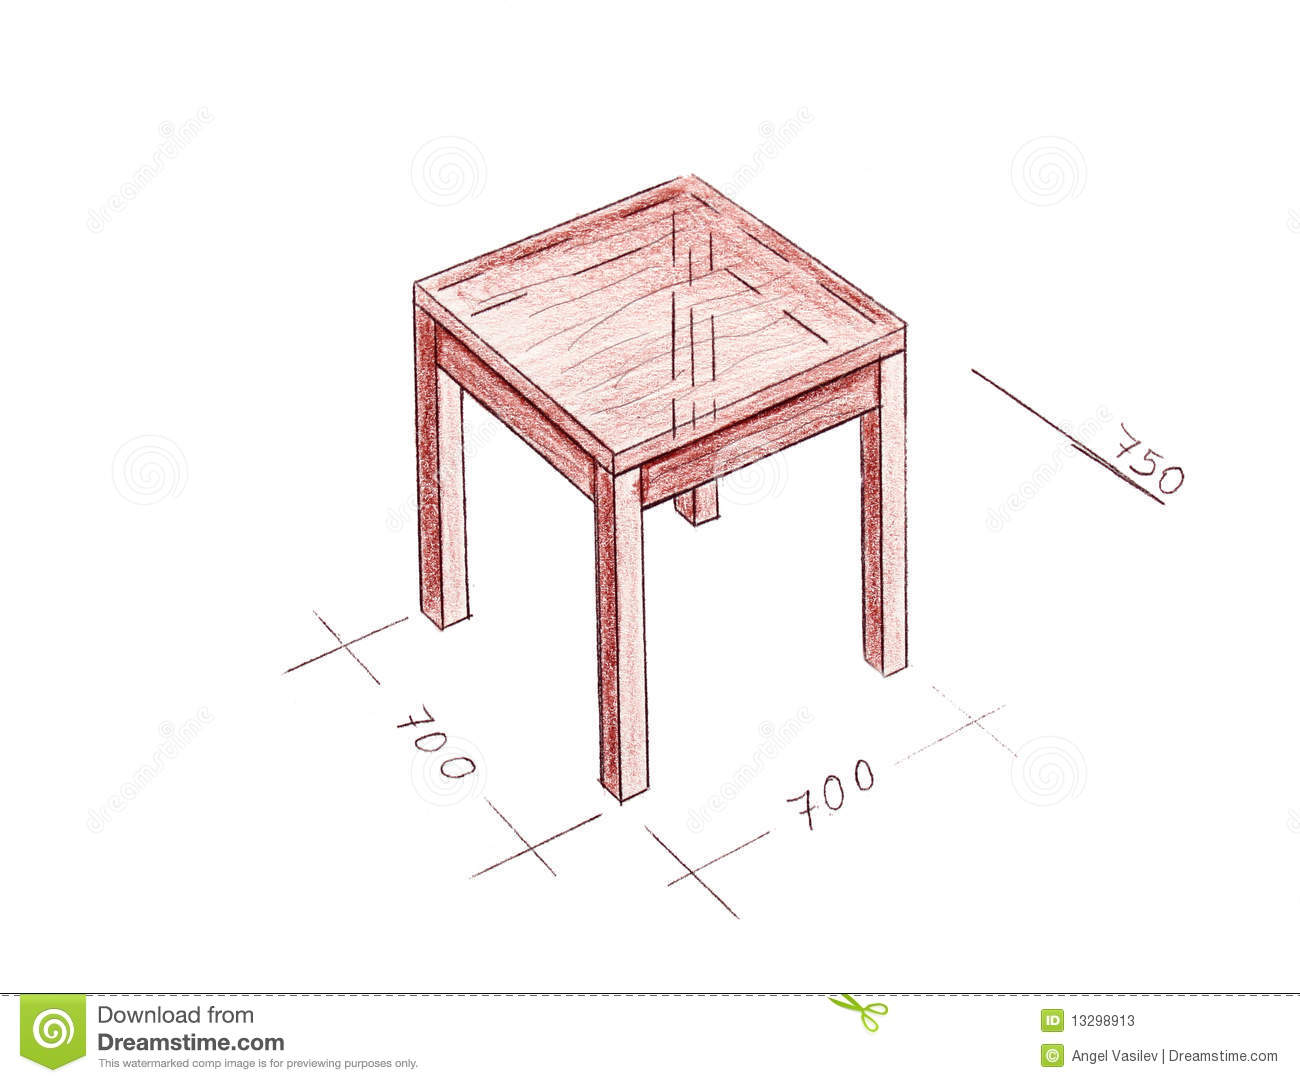 Design Drawing Drawn Freehand Furniture Hand Illustration Interior Isolated Modern Table